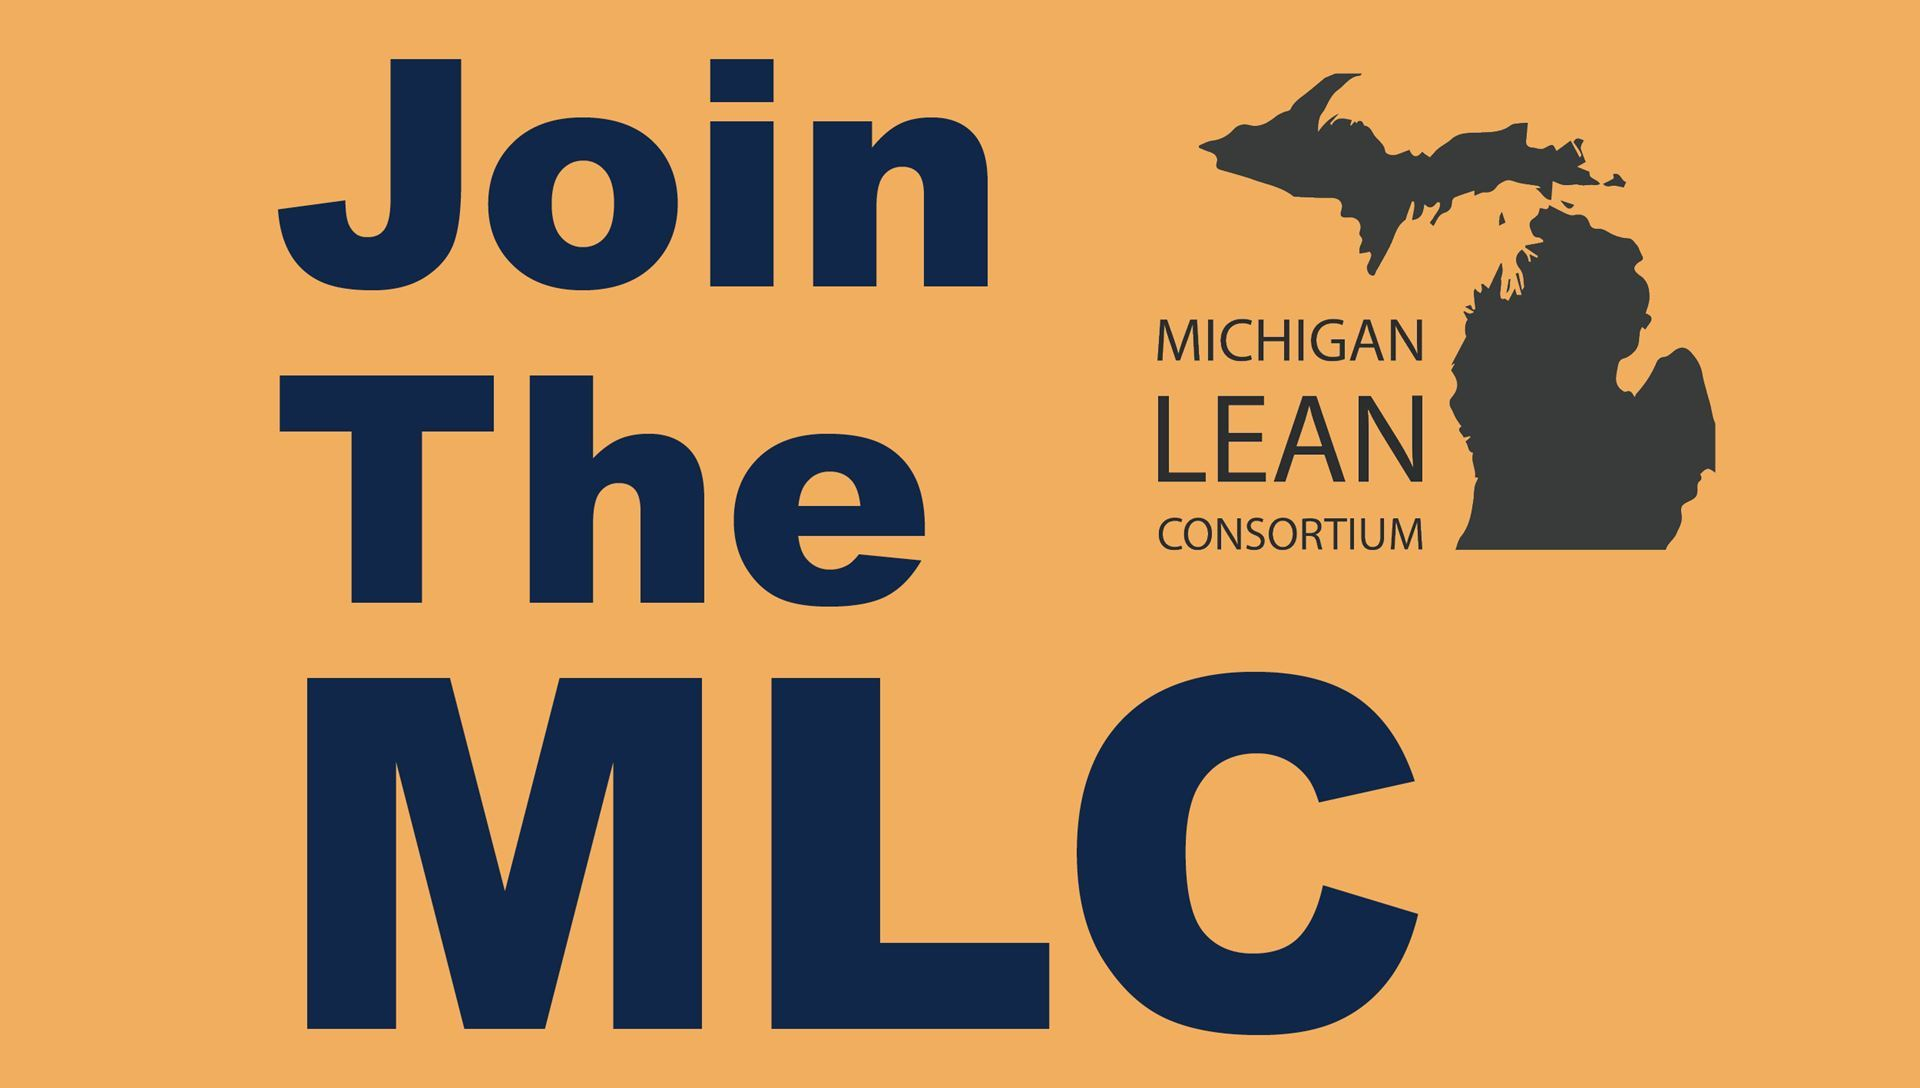 Michigan Lean Consortium - Home